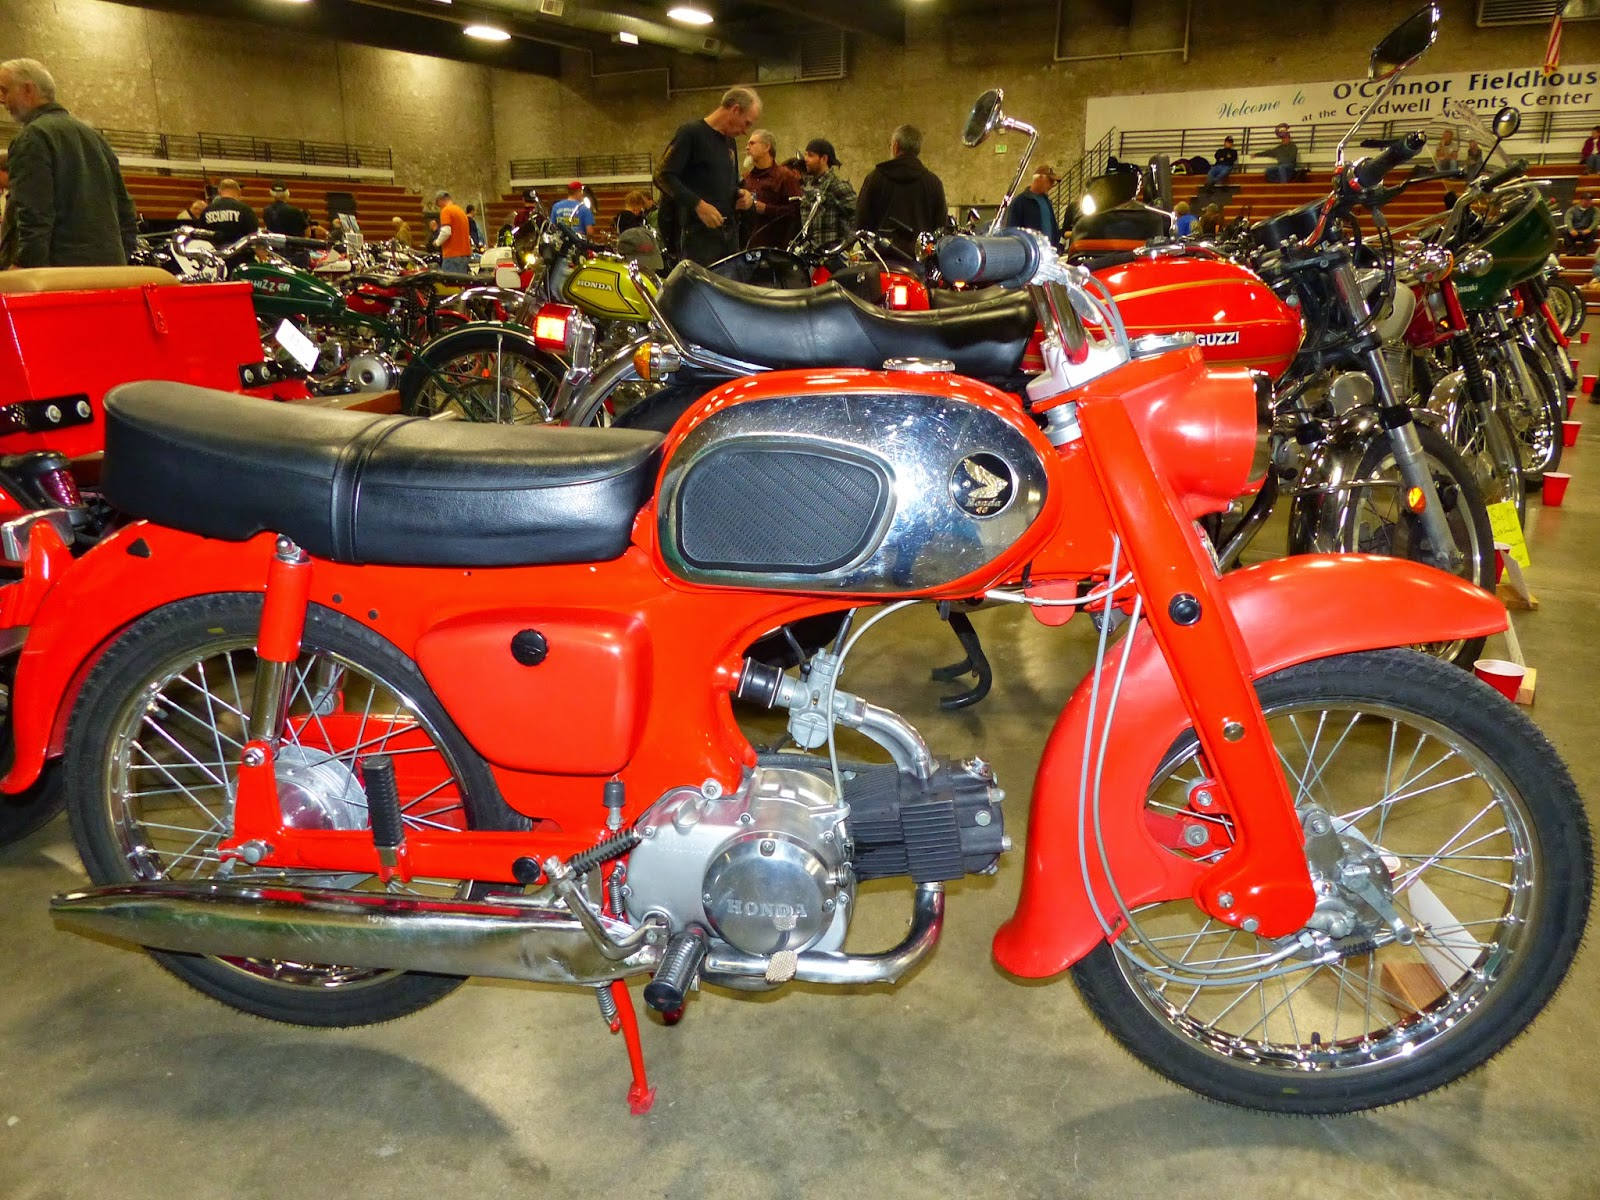 Permalink to 1960s Honda Motorcycles For Sale